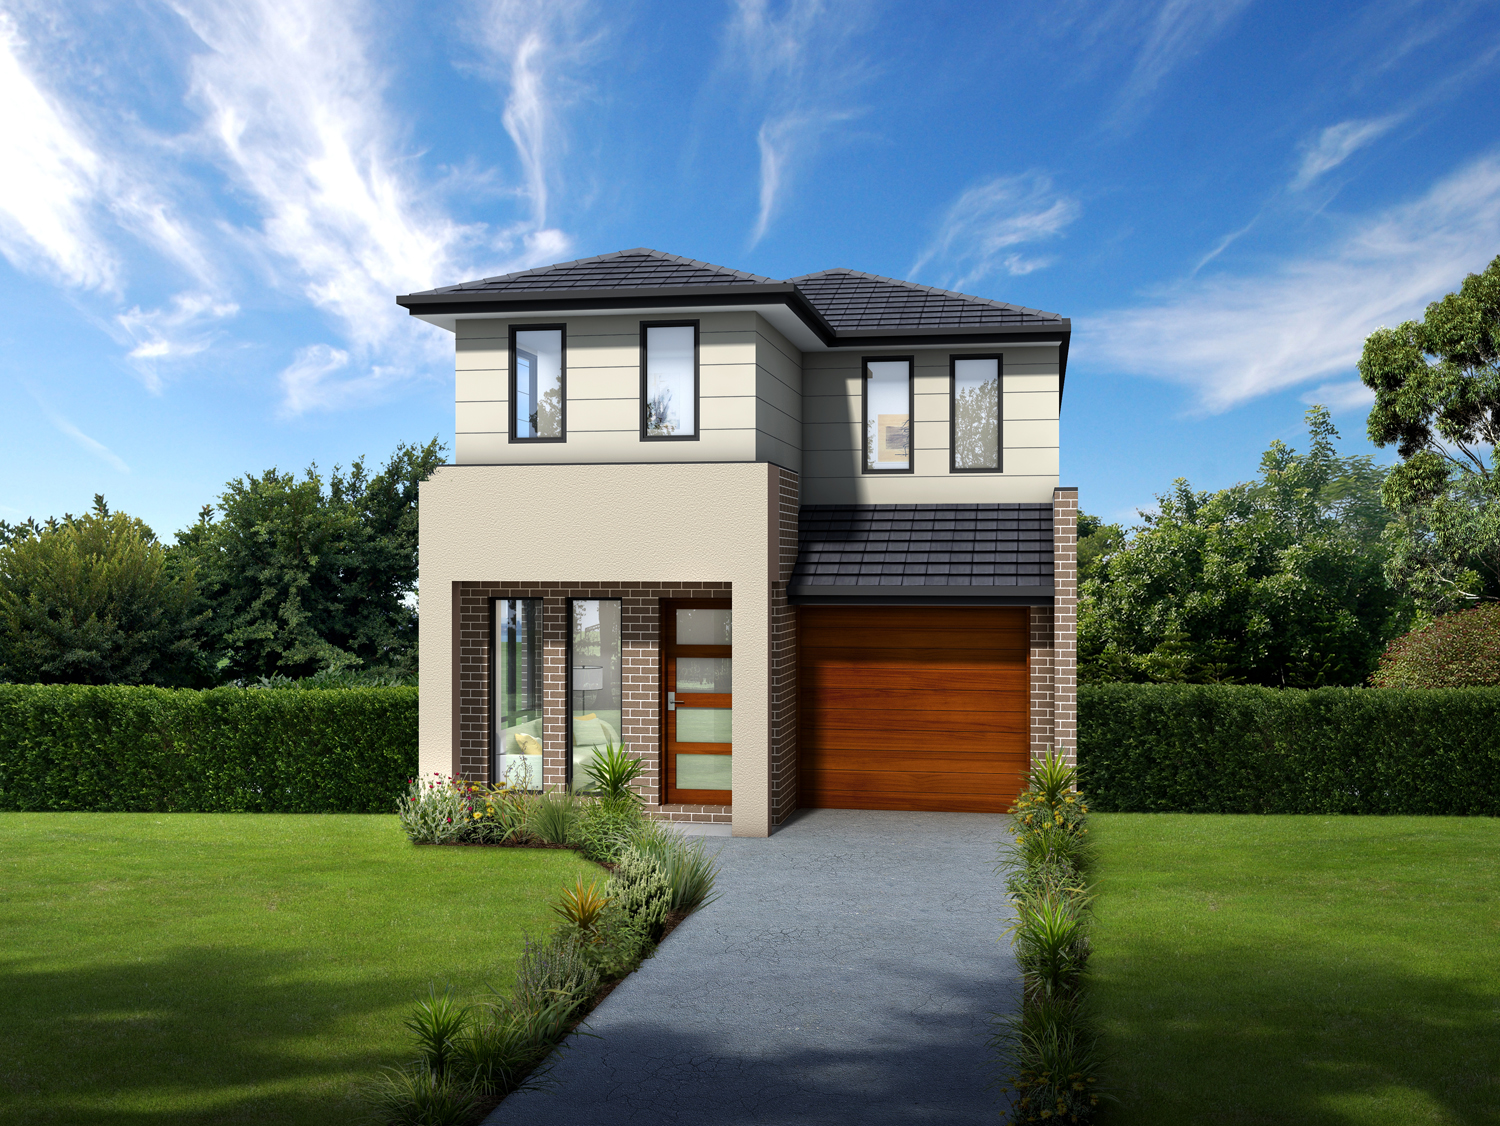 Meeting high demand narrow lot designs completehome for Narrow lot homes